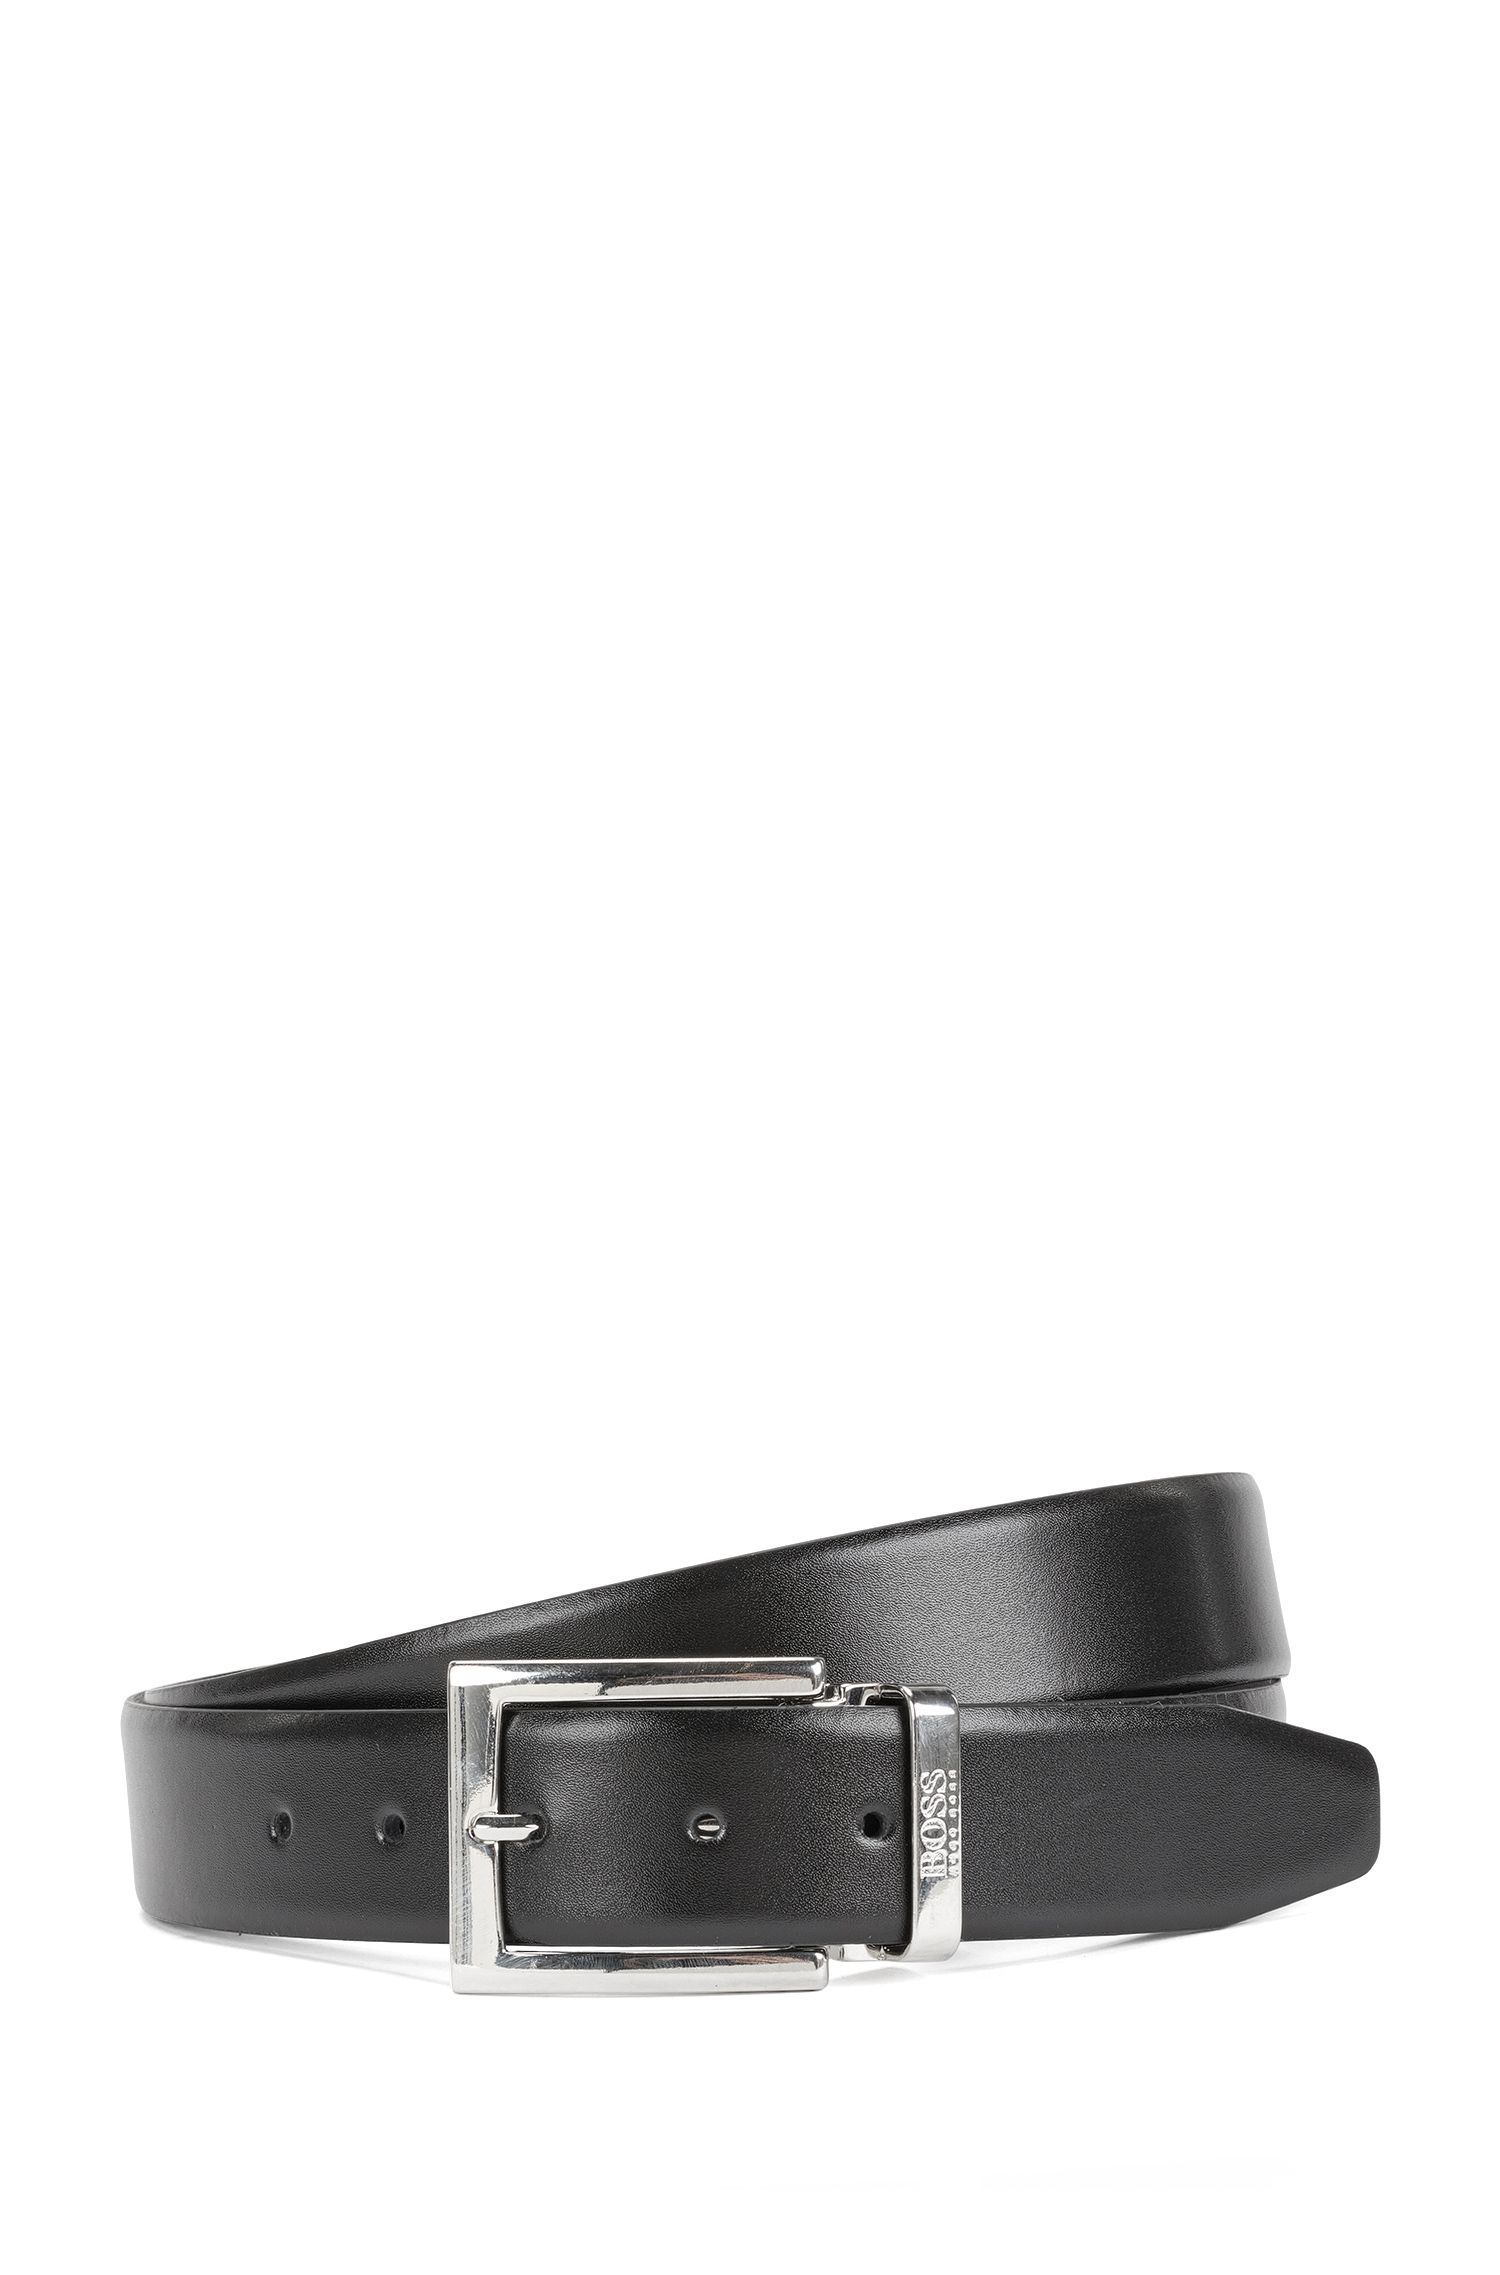 Leather Handcrafted Reversible Belt | Otravely Or35 Ps